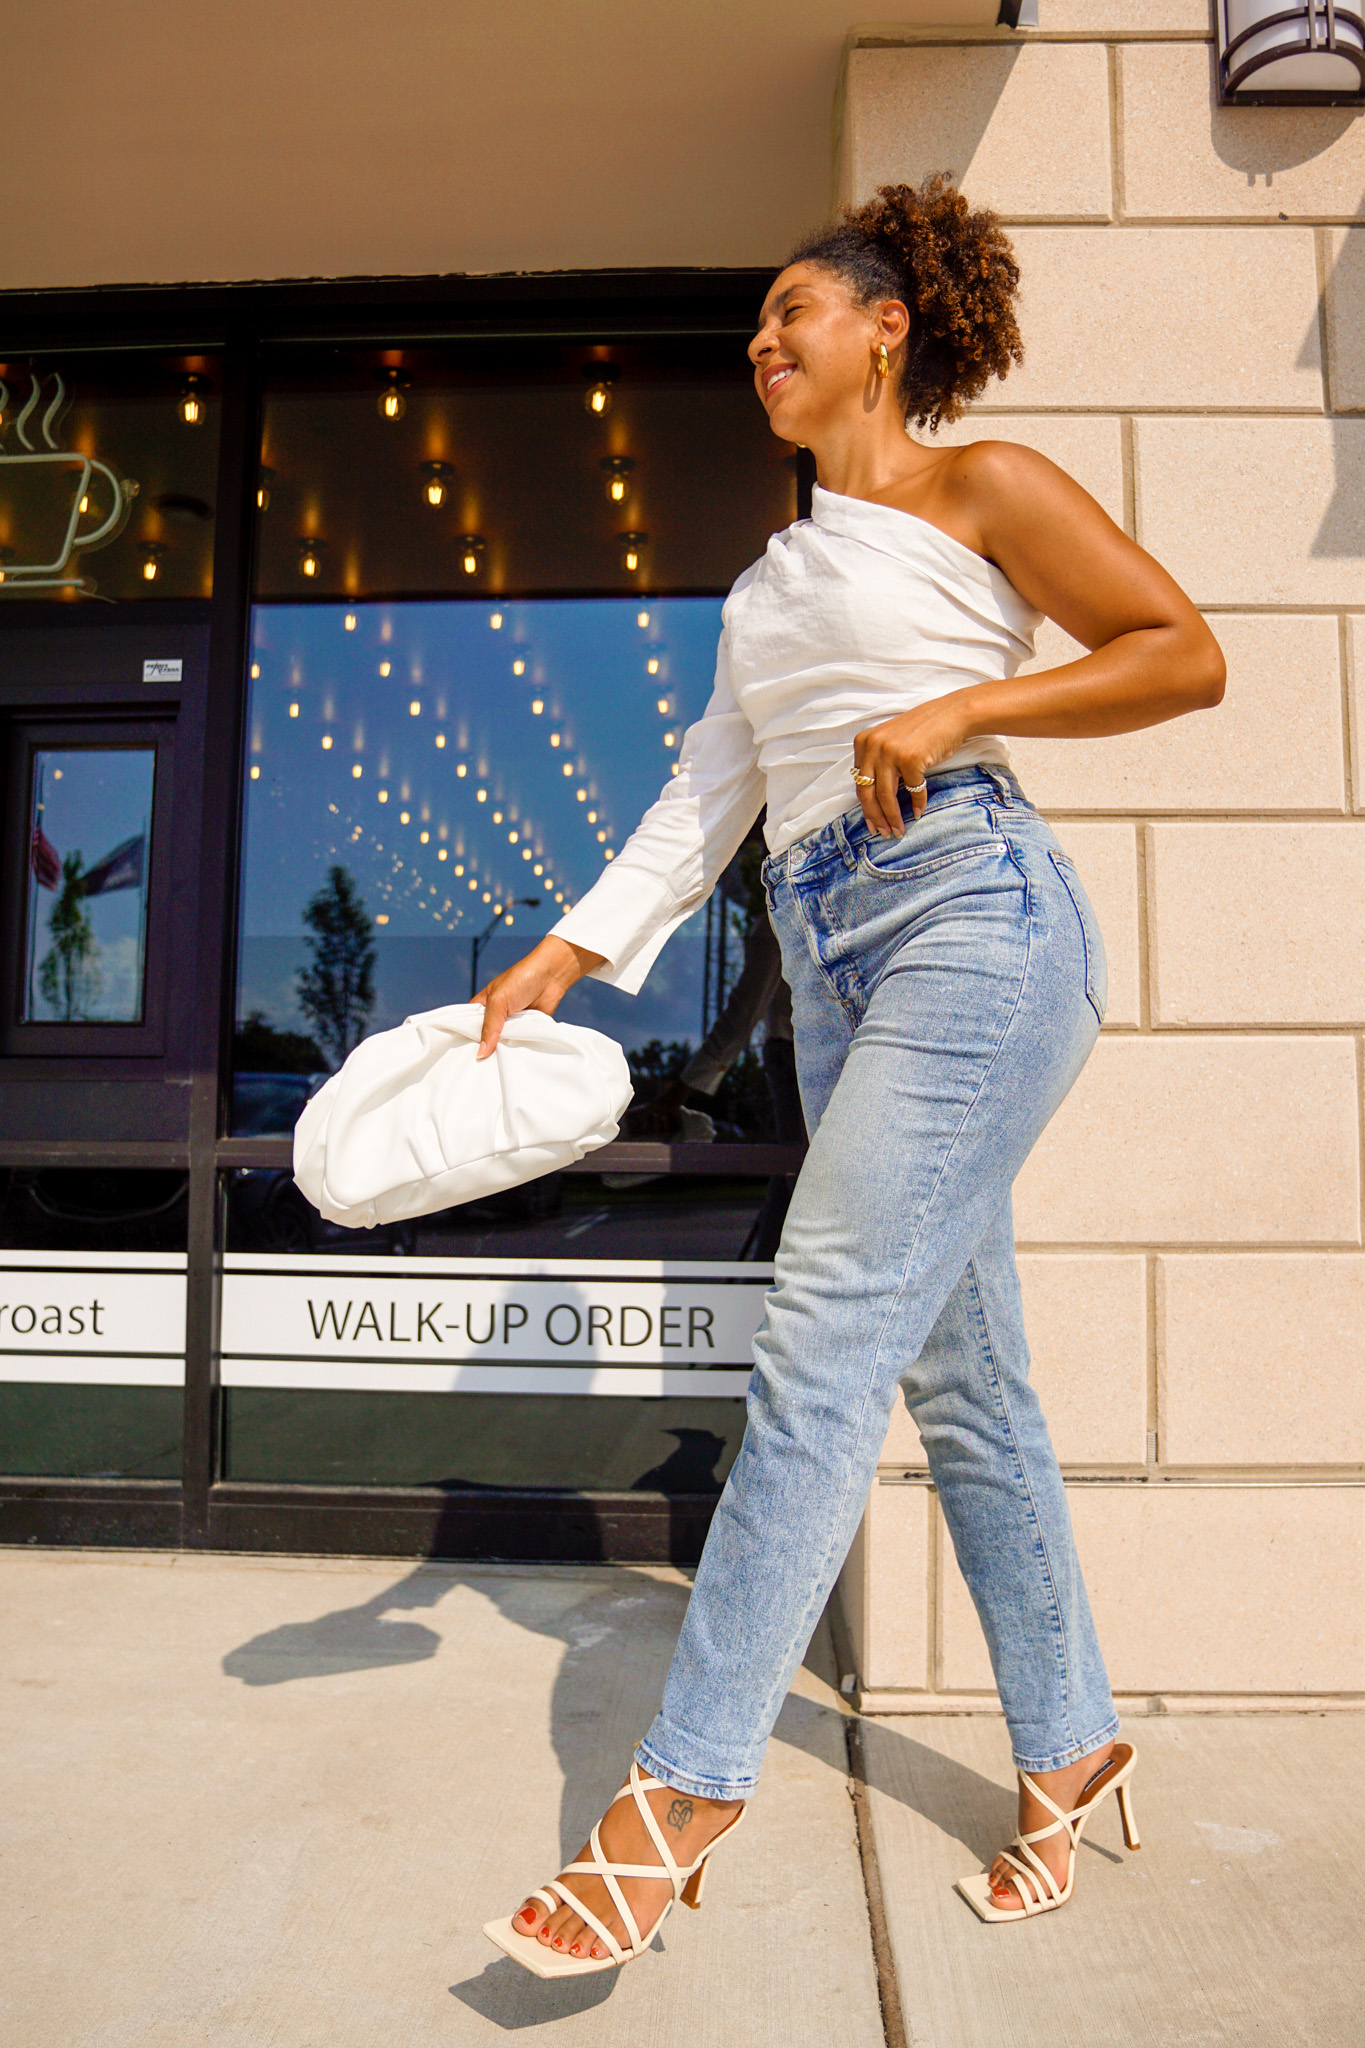 flattering straight leg jeans for pear shaped women, summer outfits women casual fashion ideas street styles, fashion blogger tips outfits, black fashion bloggers, fashion blogger style outfits, street style edgy minimal classic, style tips and tricks every girl, black fashion bloggers inspiration, summer outfits women 20s style inspiration